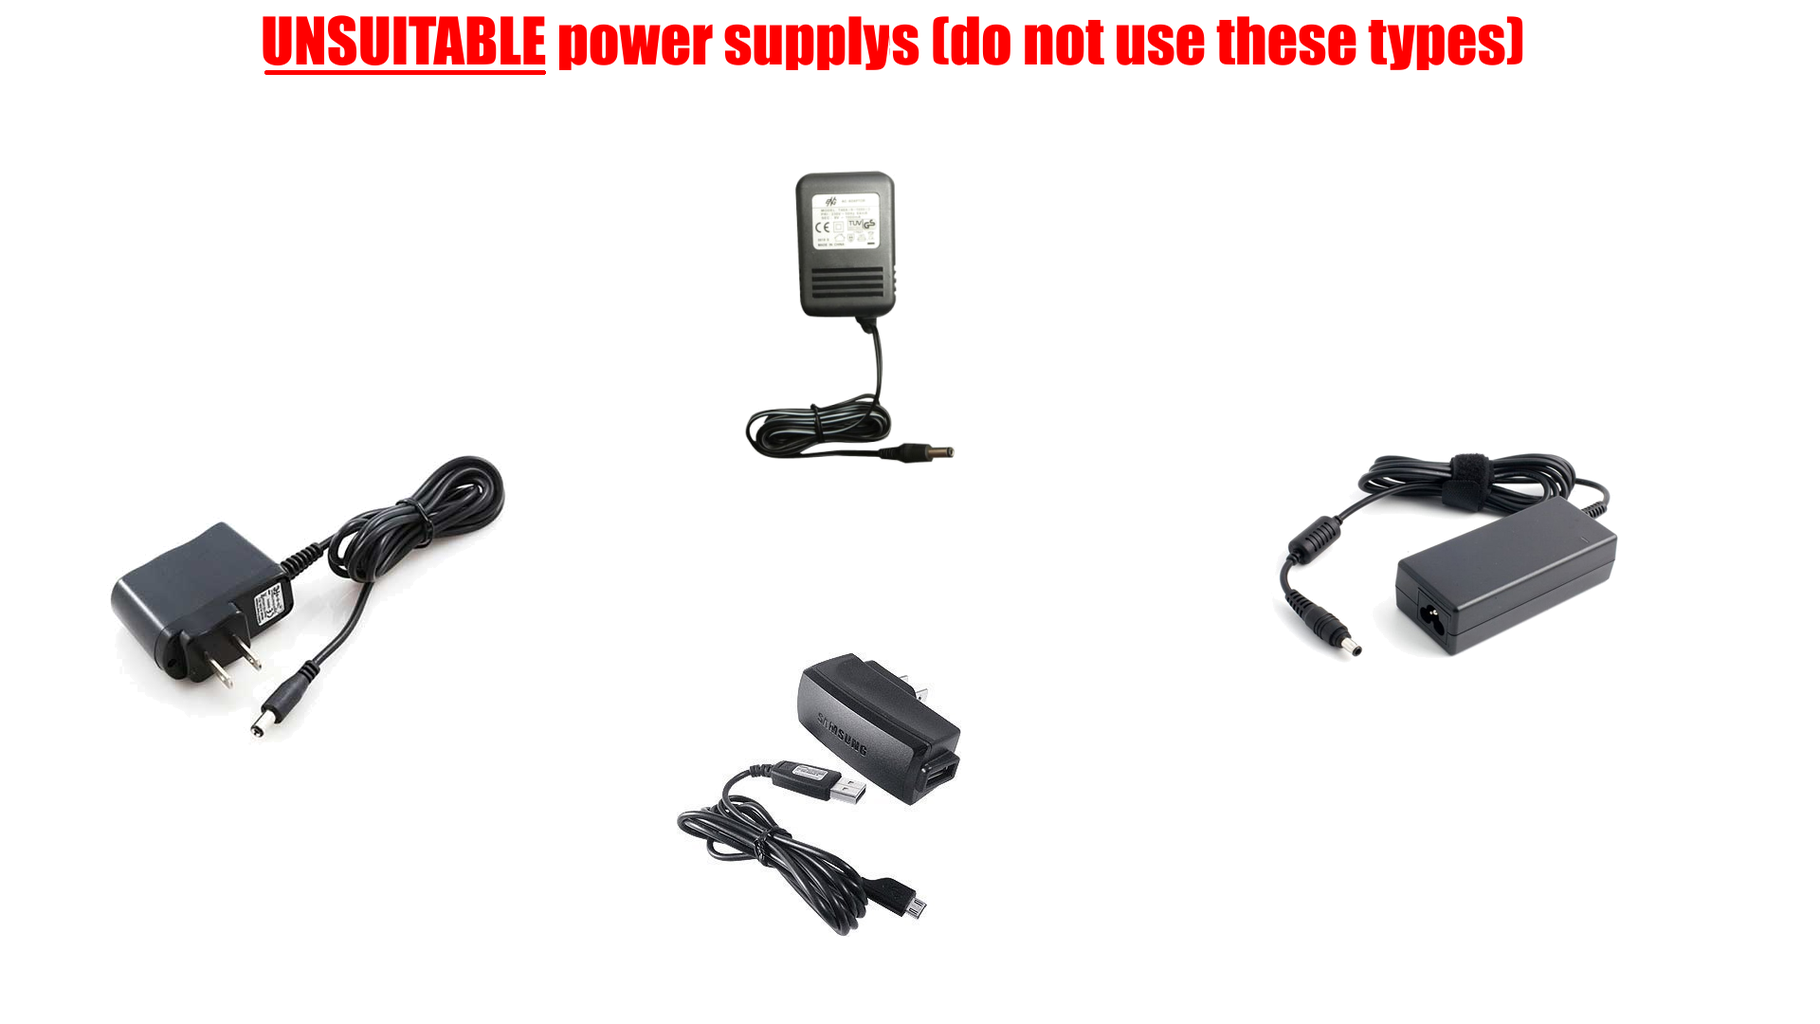 Choosing a Suitable Power Supply